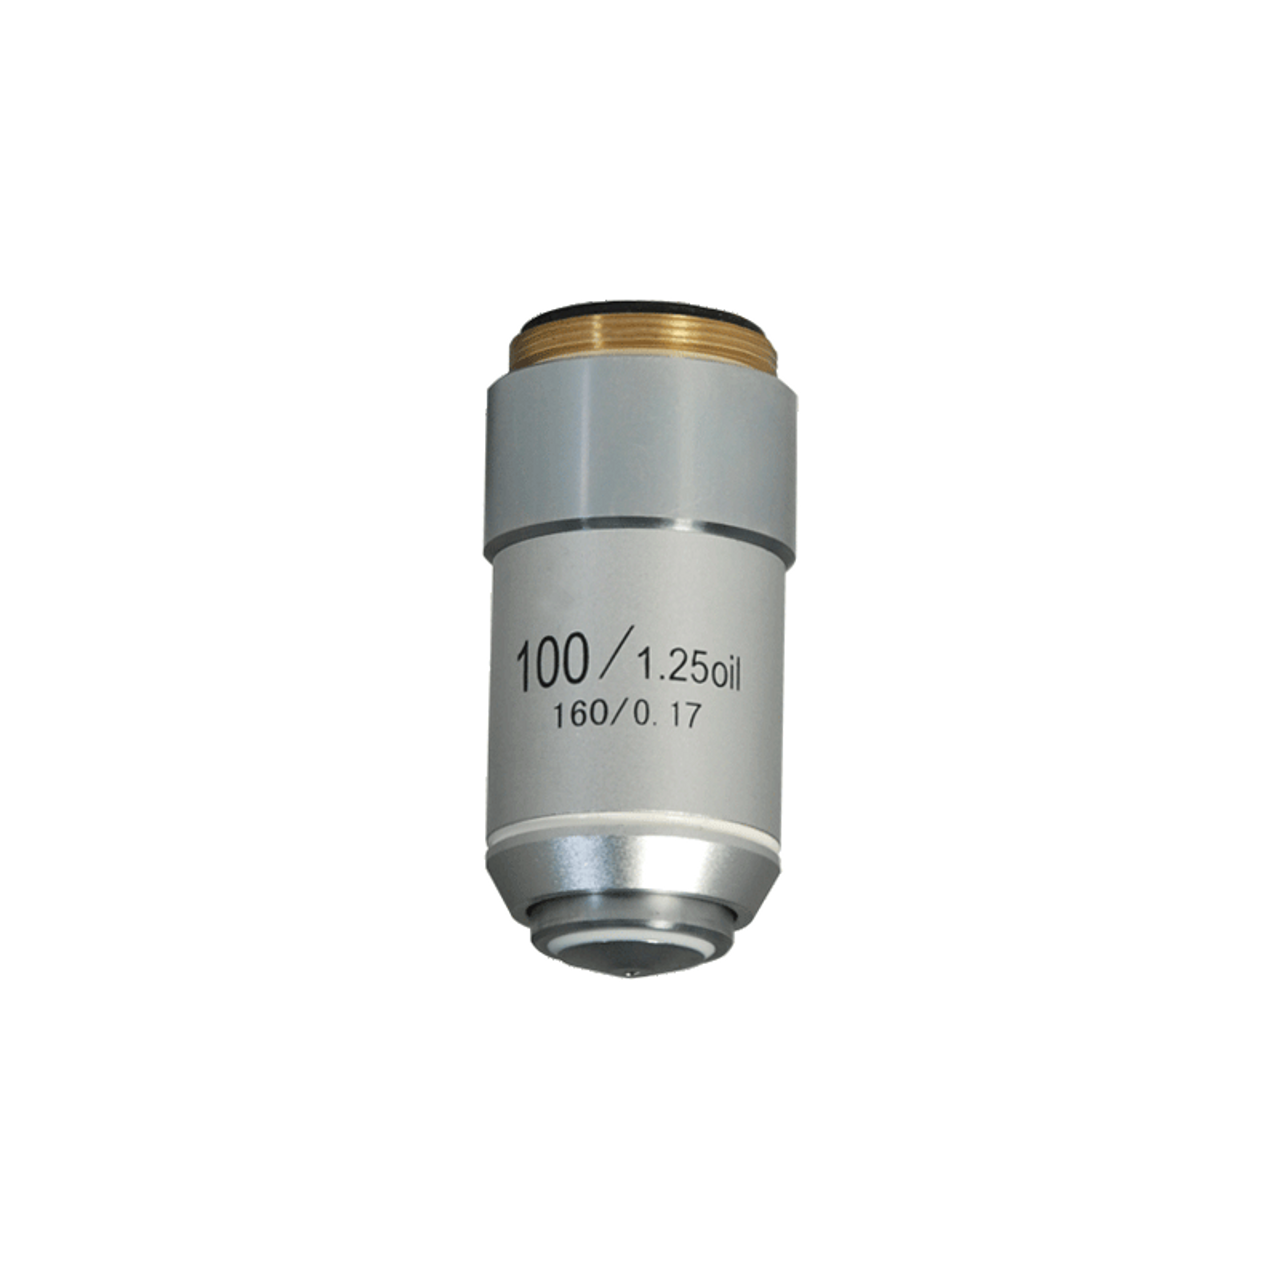 Achromatic Positive Phase Contrast Microscope Objective Lens Working Distance 0.17mm PH03023831 BoliOptics 100X Infinity-Corrected Plan PH P